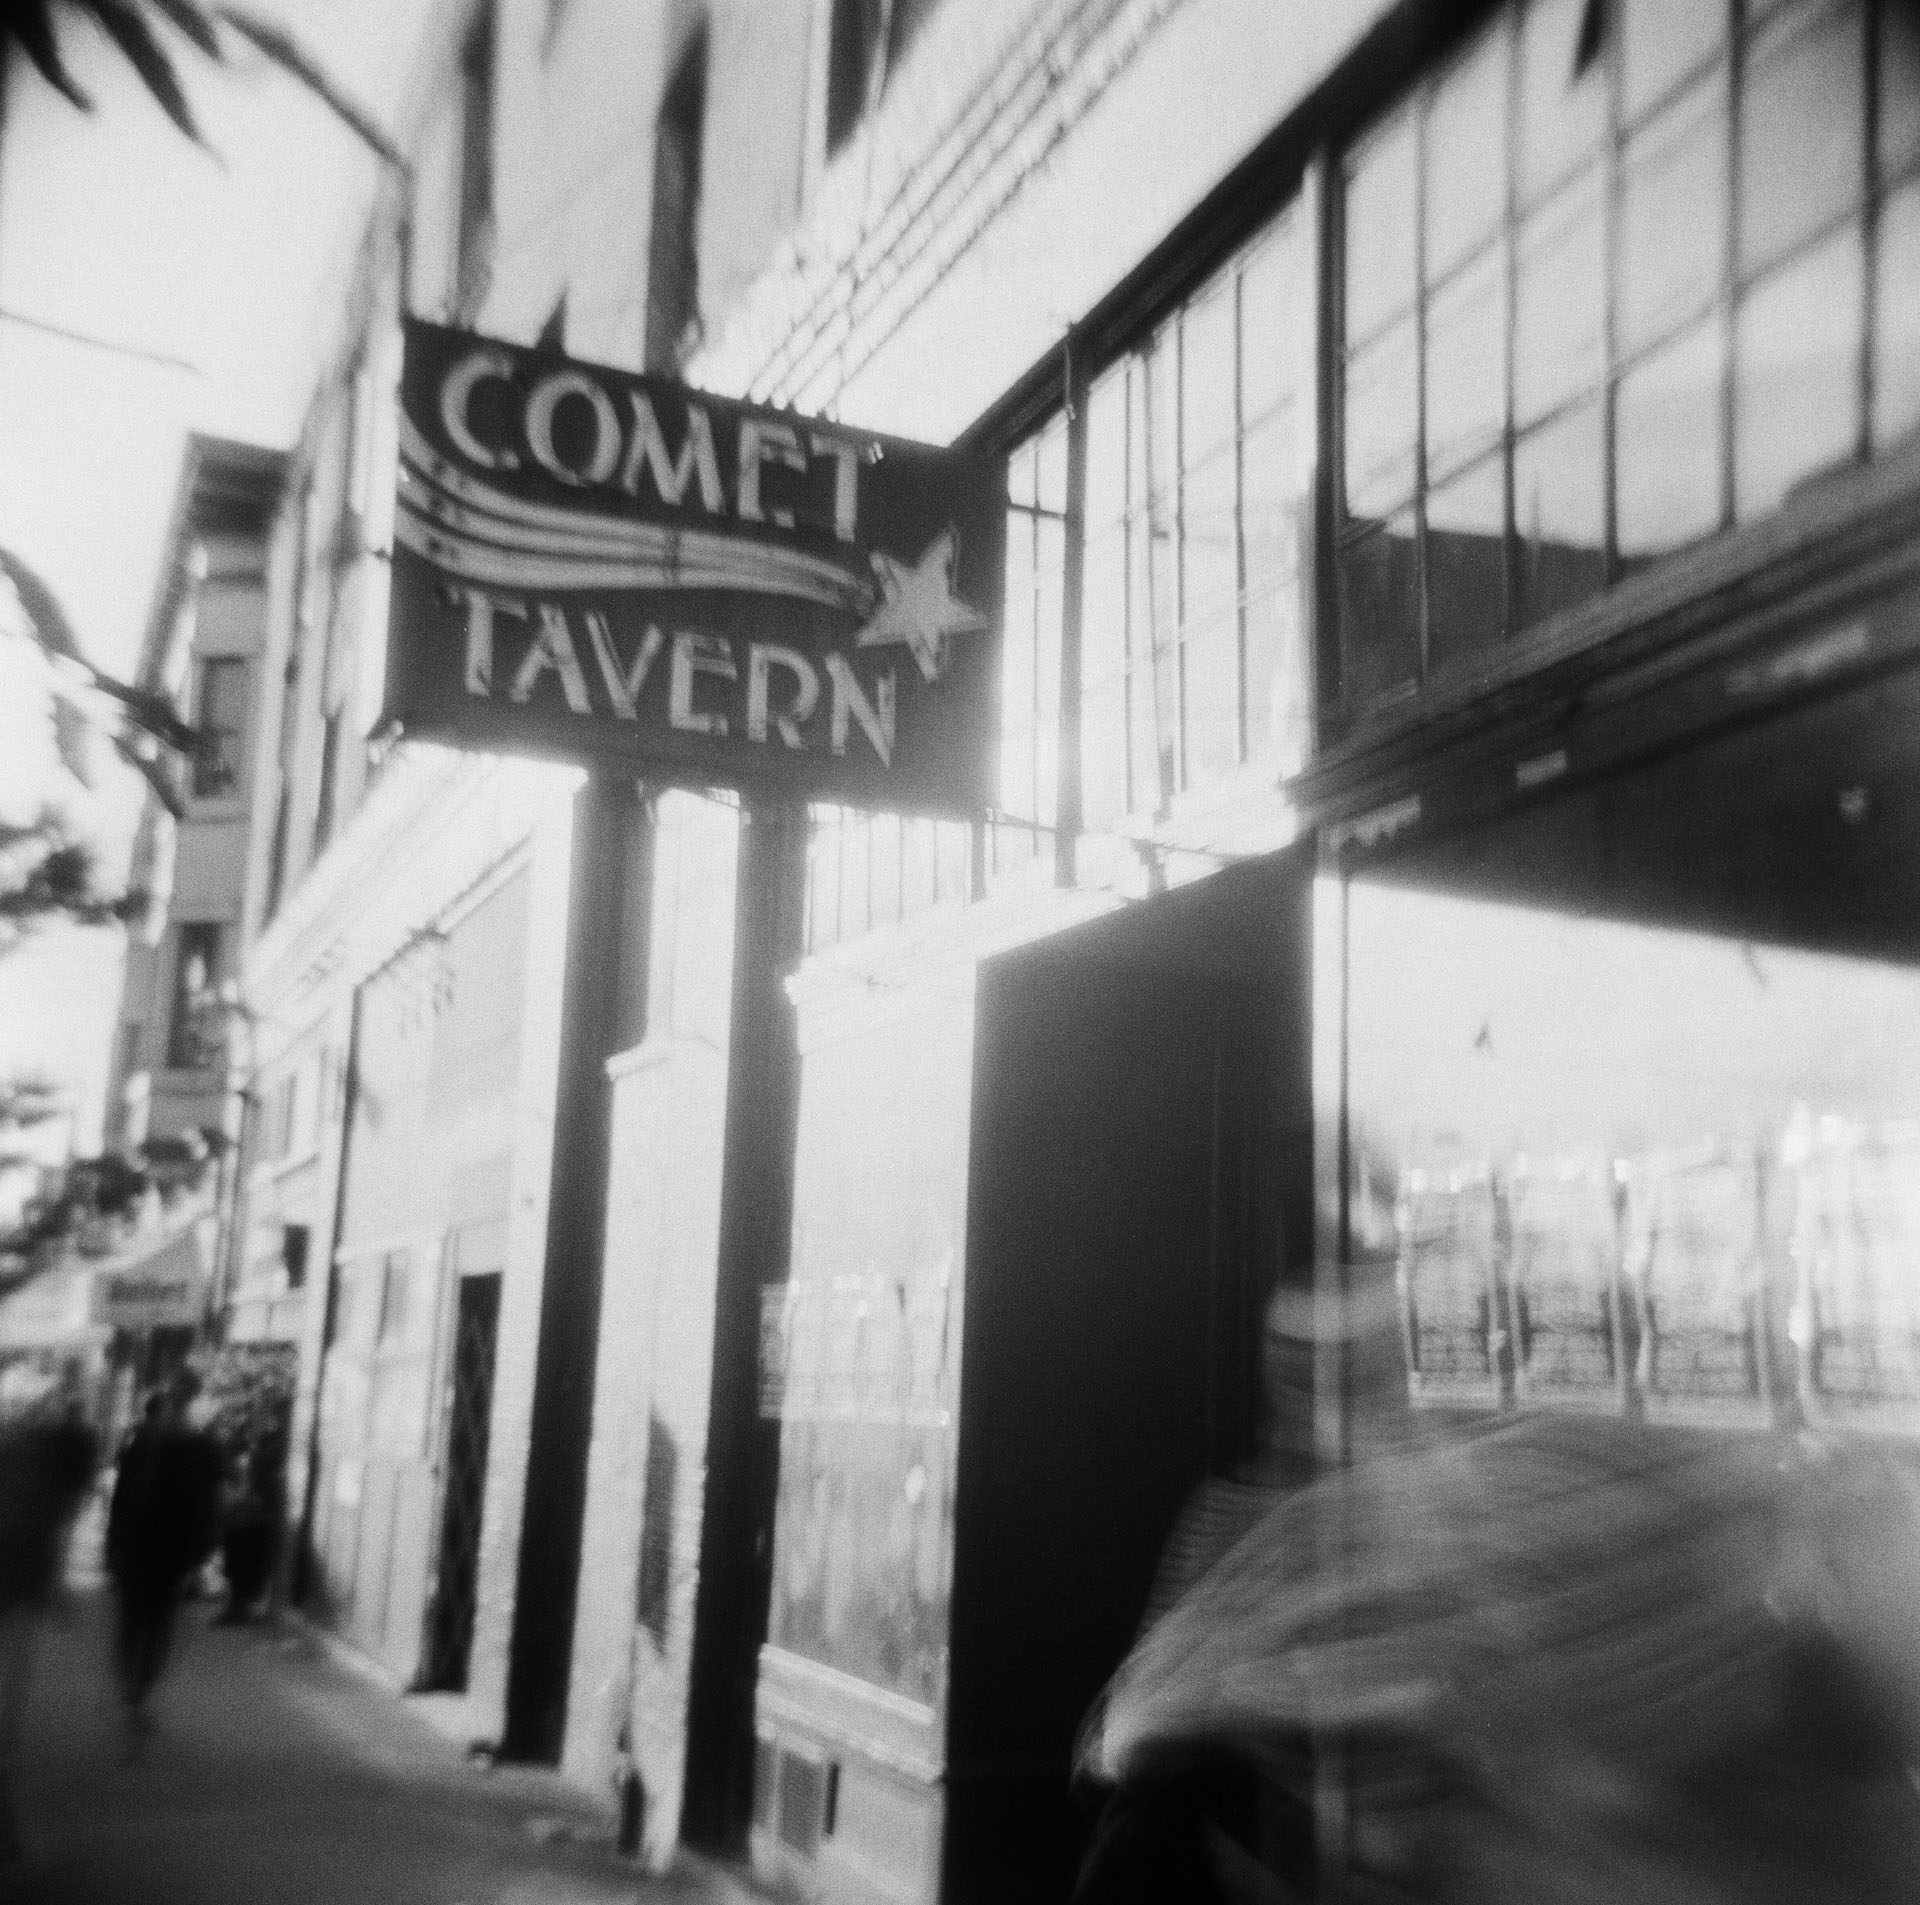 Comet Tavern with Ghost